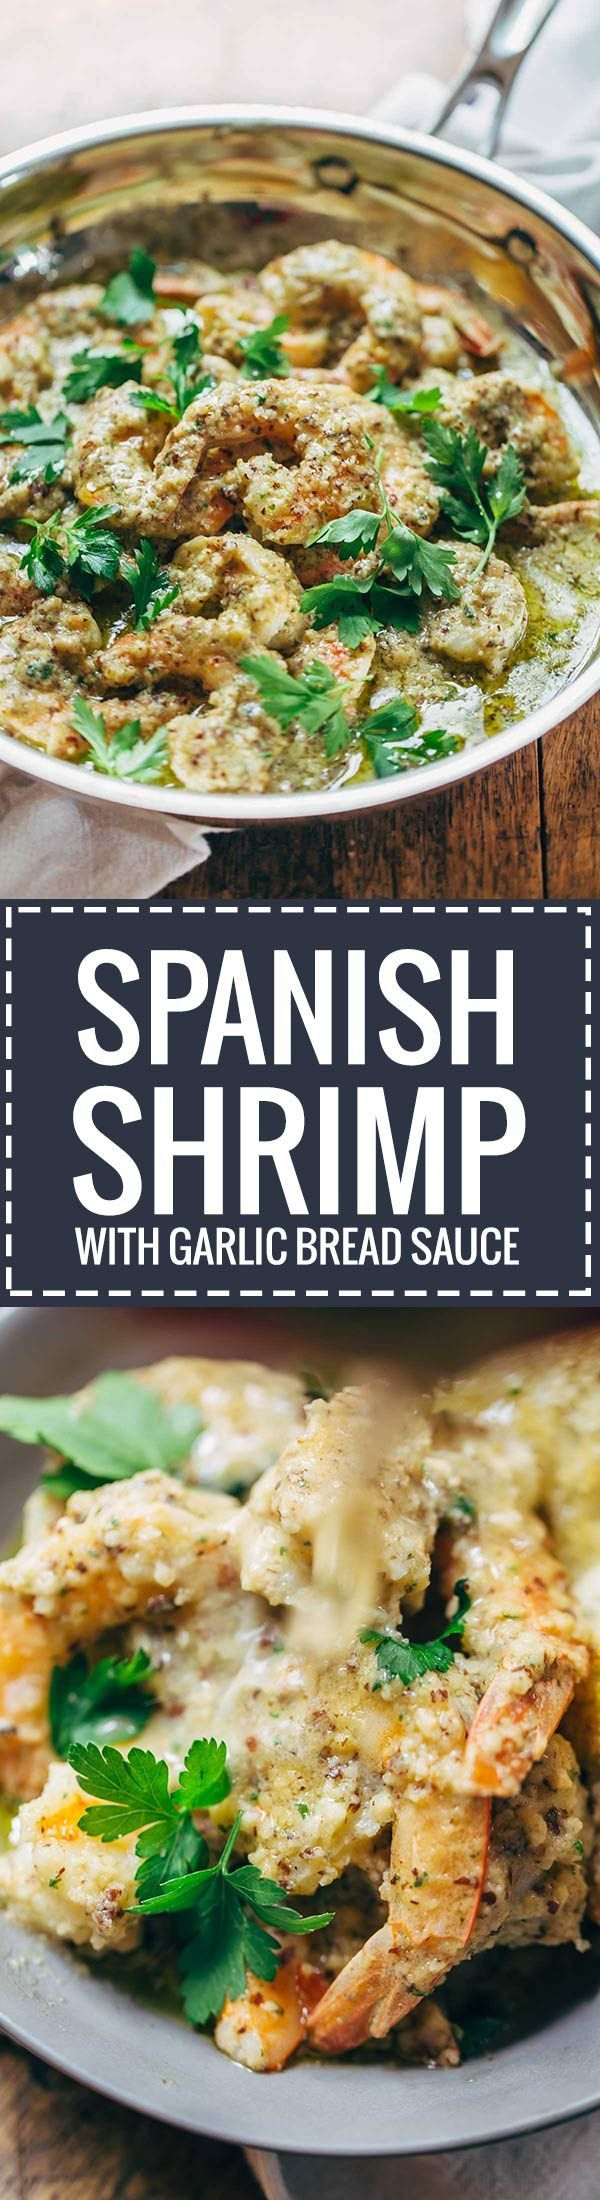 Spanish Shrimp in Garlic Bread Sauce - this recipe has the most yummy sauce made from almonds, garlic, olive oil, and bread crumbs. Our dinner guests raved!   pinchofyum.com